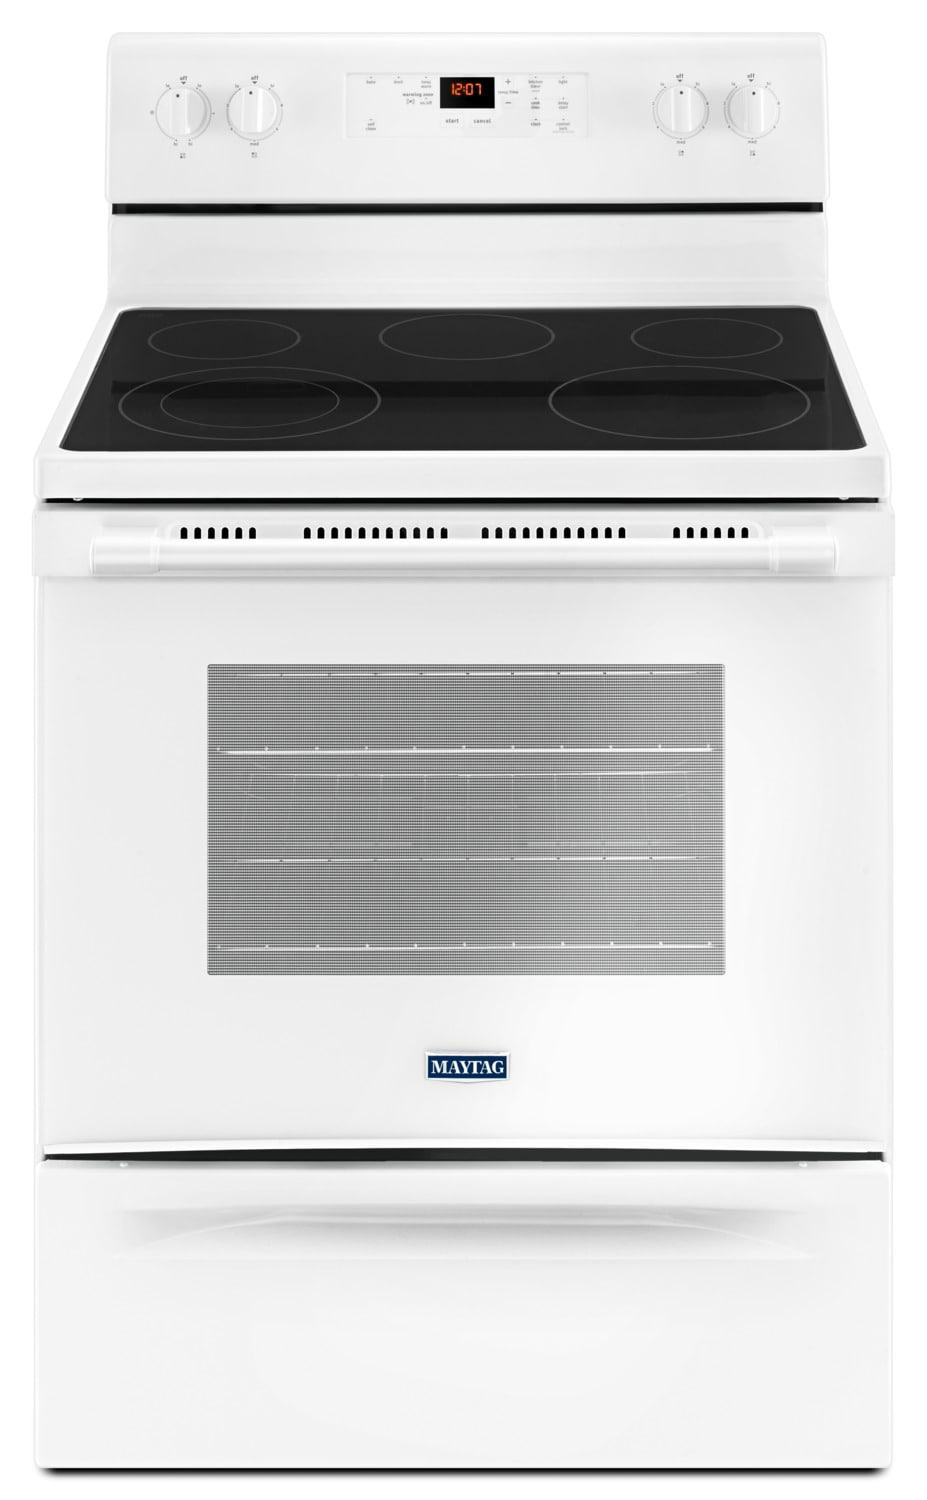 Maytag 5.3 Cu. Ft. Electric Freestanding Range – YMER6600FW